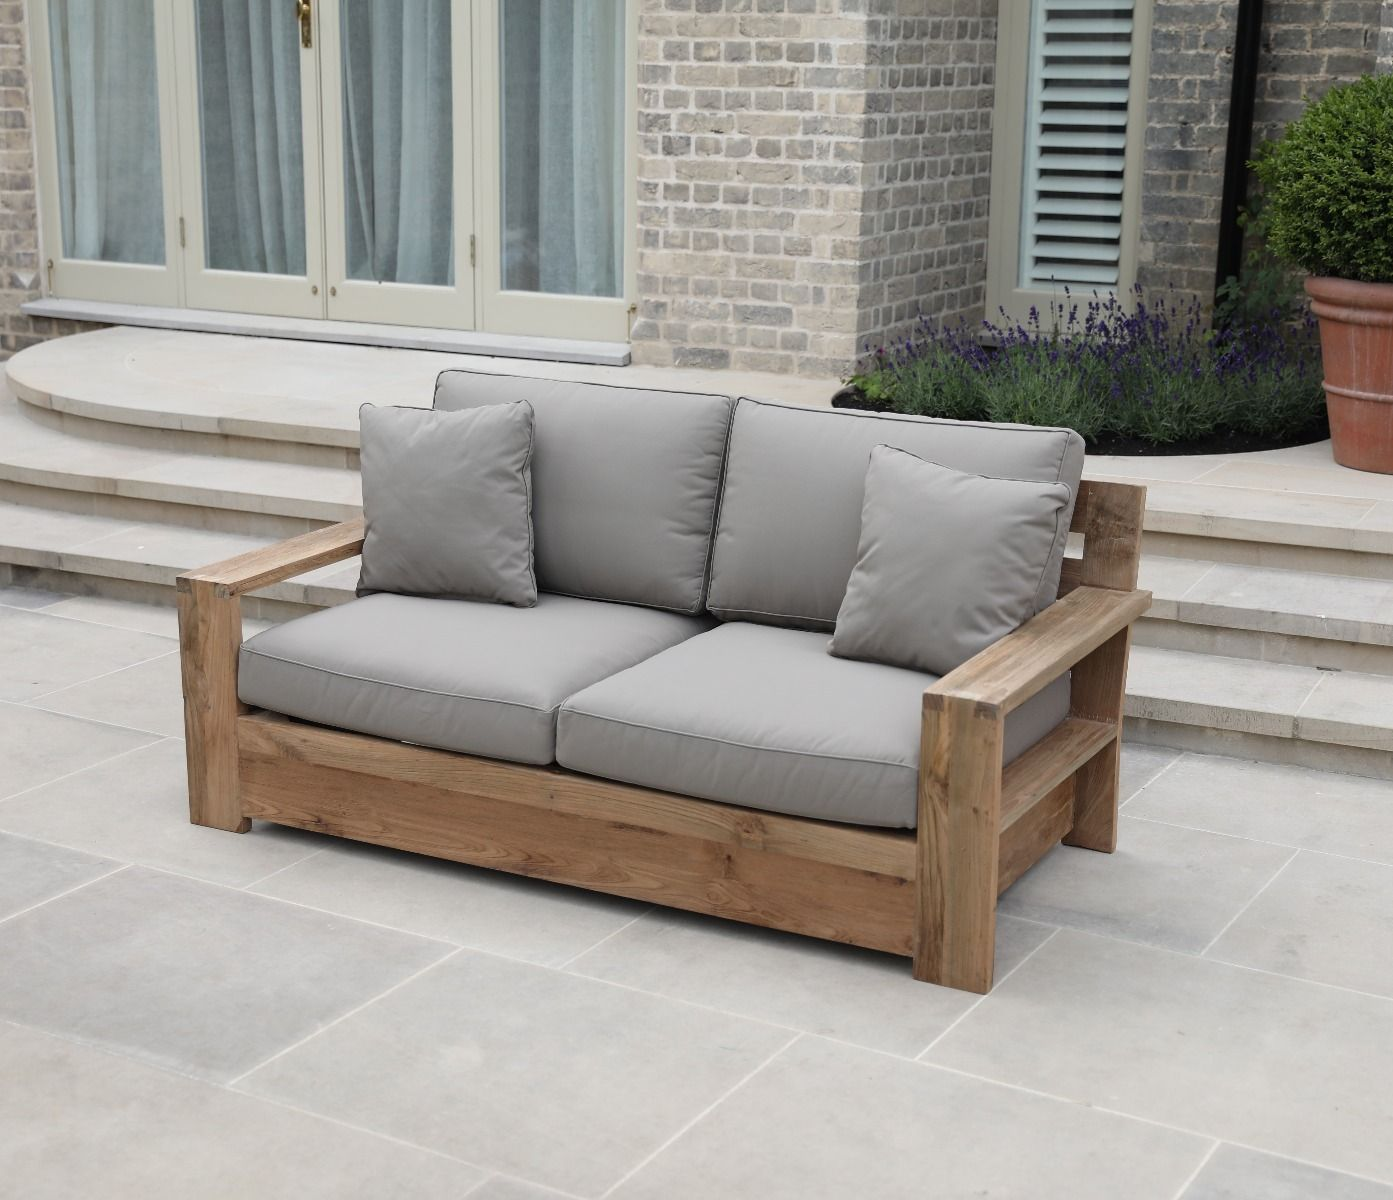 Tuscan Reclaimed Two-Seater Sofa